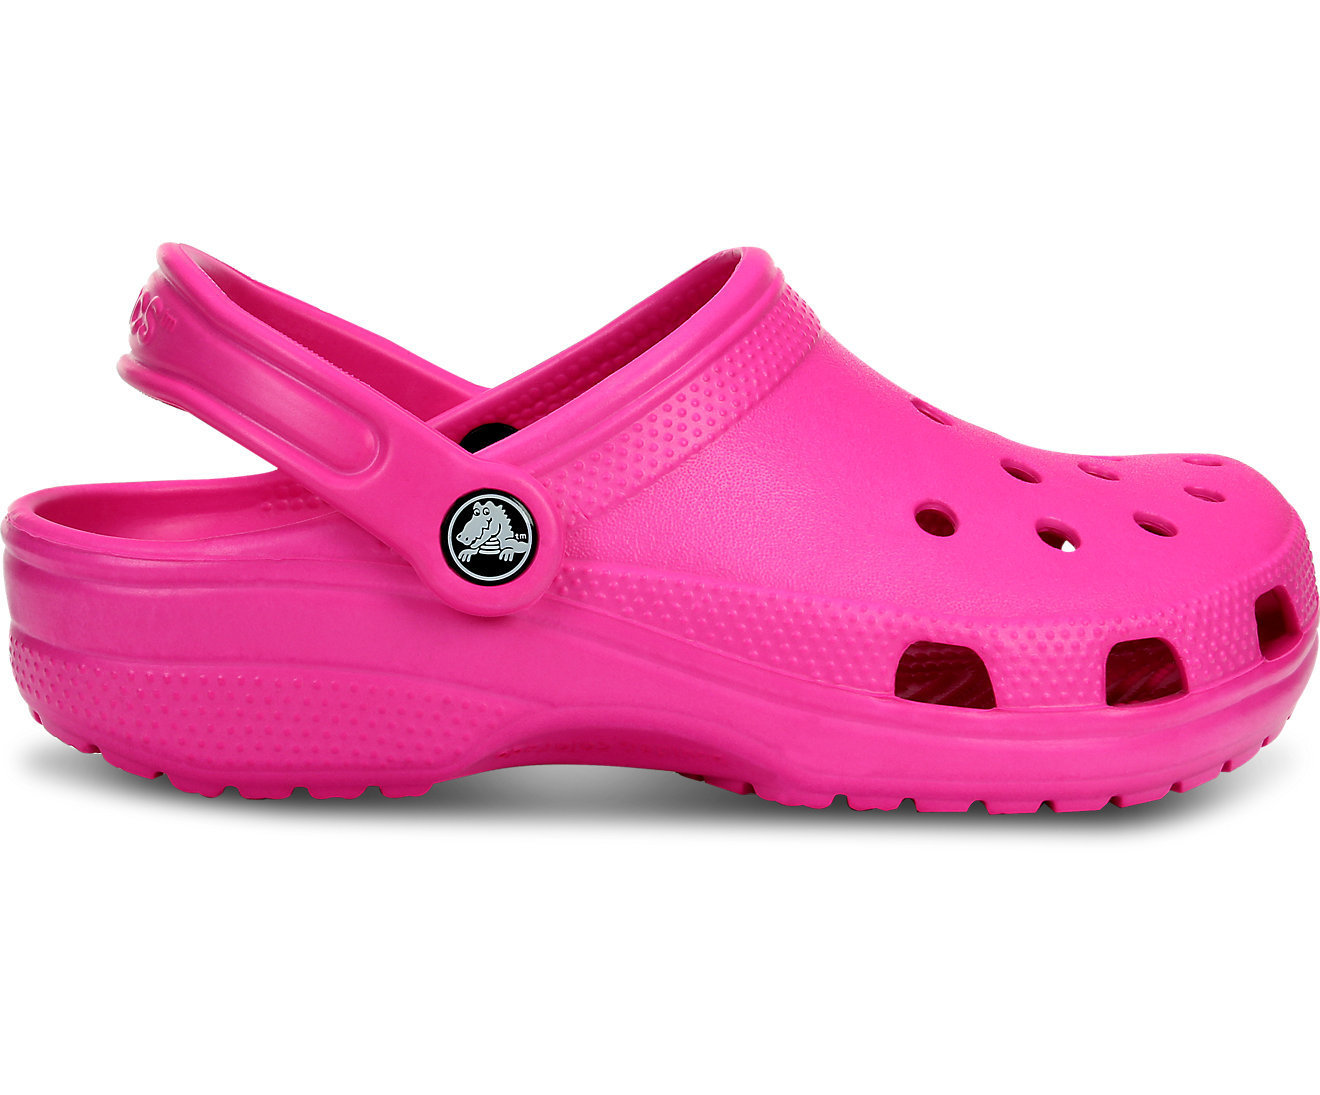 Sabot CROCS Classic rose fuschia junior crocs-kids classic rose candy pink